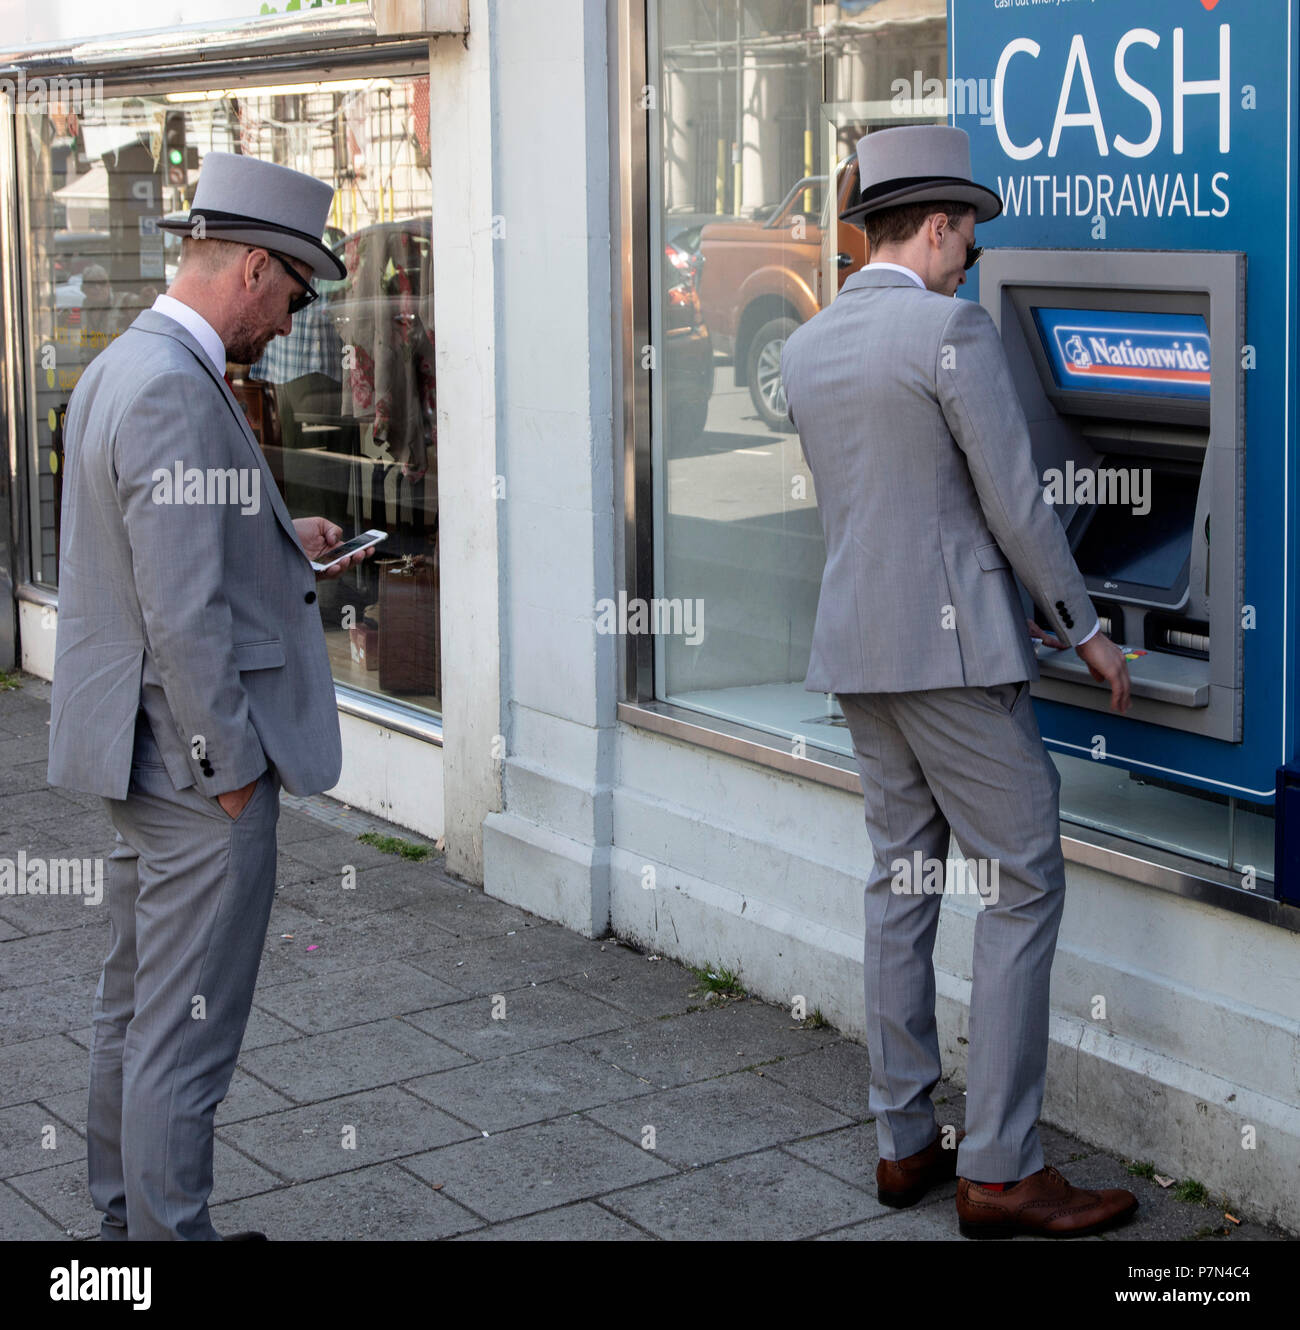 Two men at cash machine, ATM, dressed in top hats and grey suits for a wedding - Stock Image